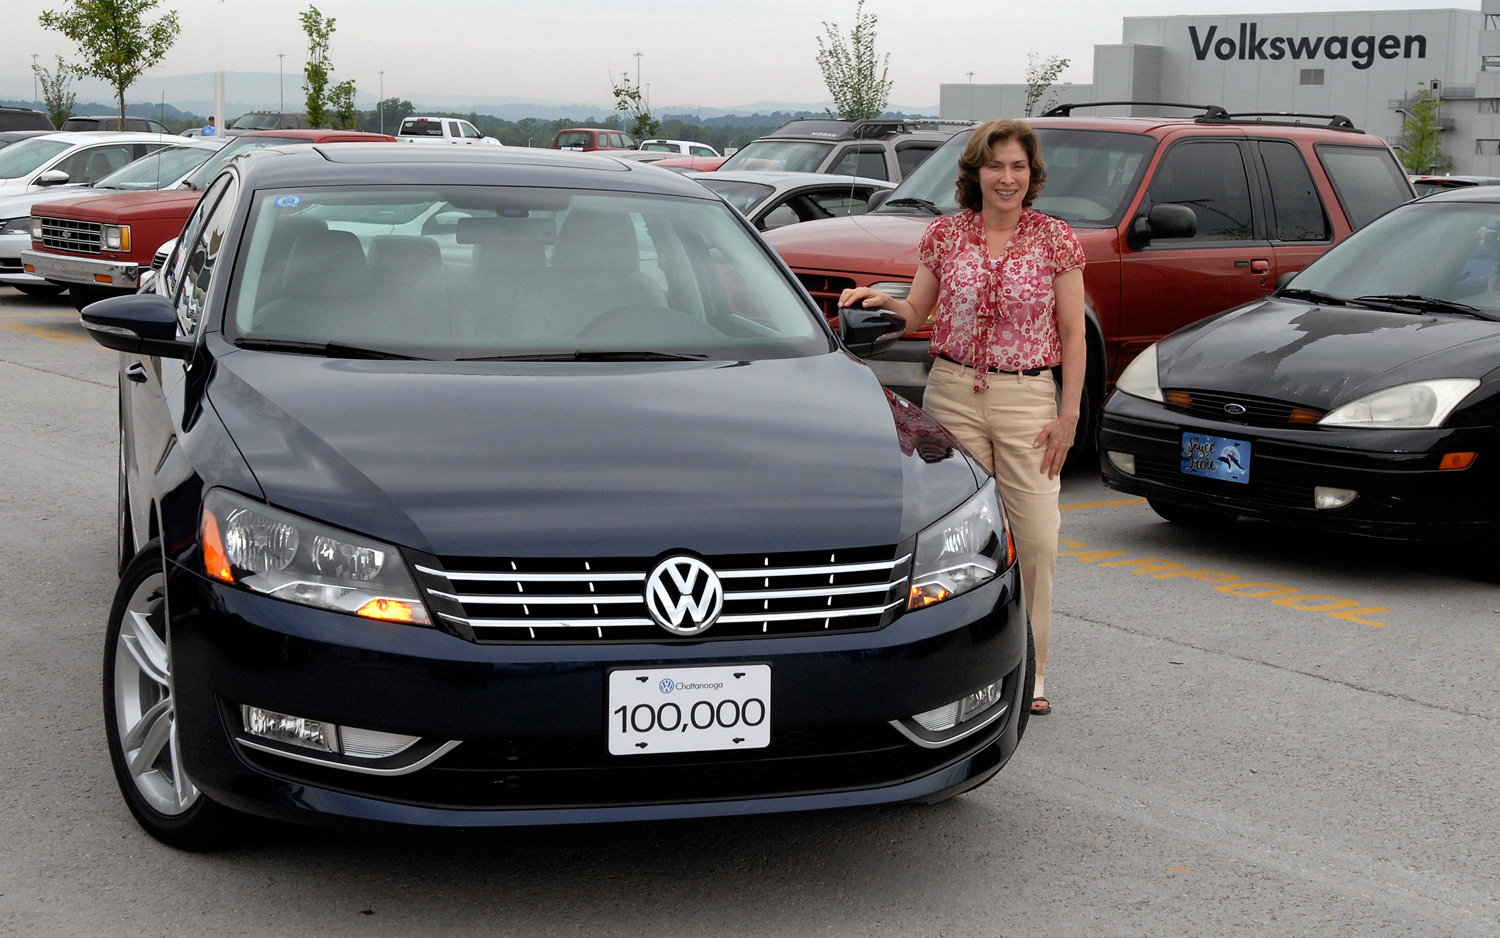 Vw Of America >> Made In America 100 000th Volkswagen Passat Built In